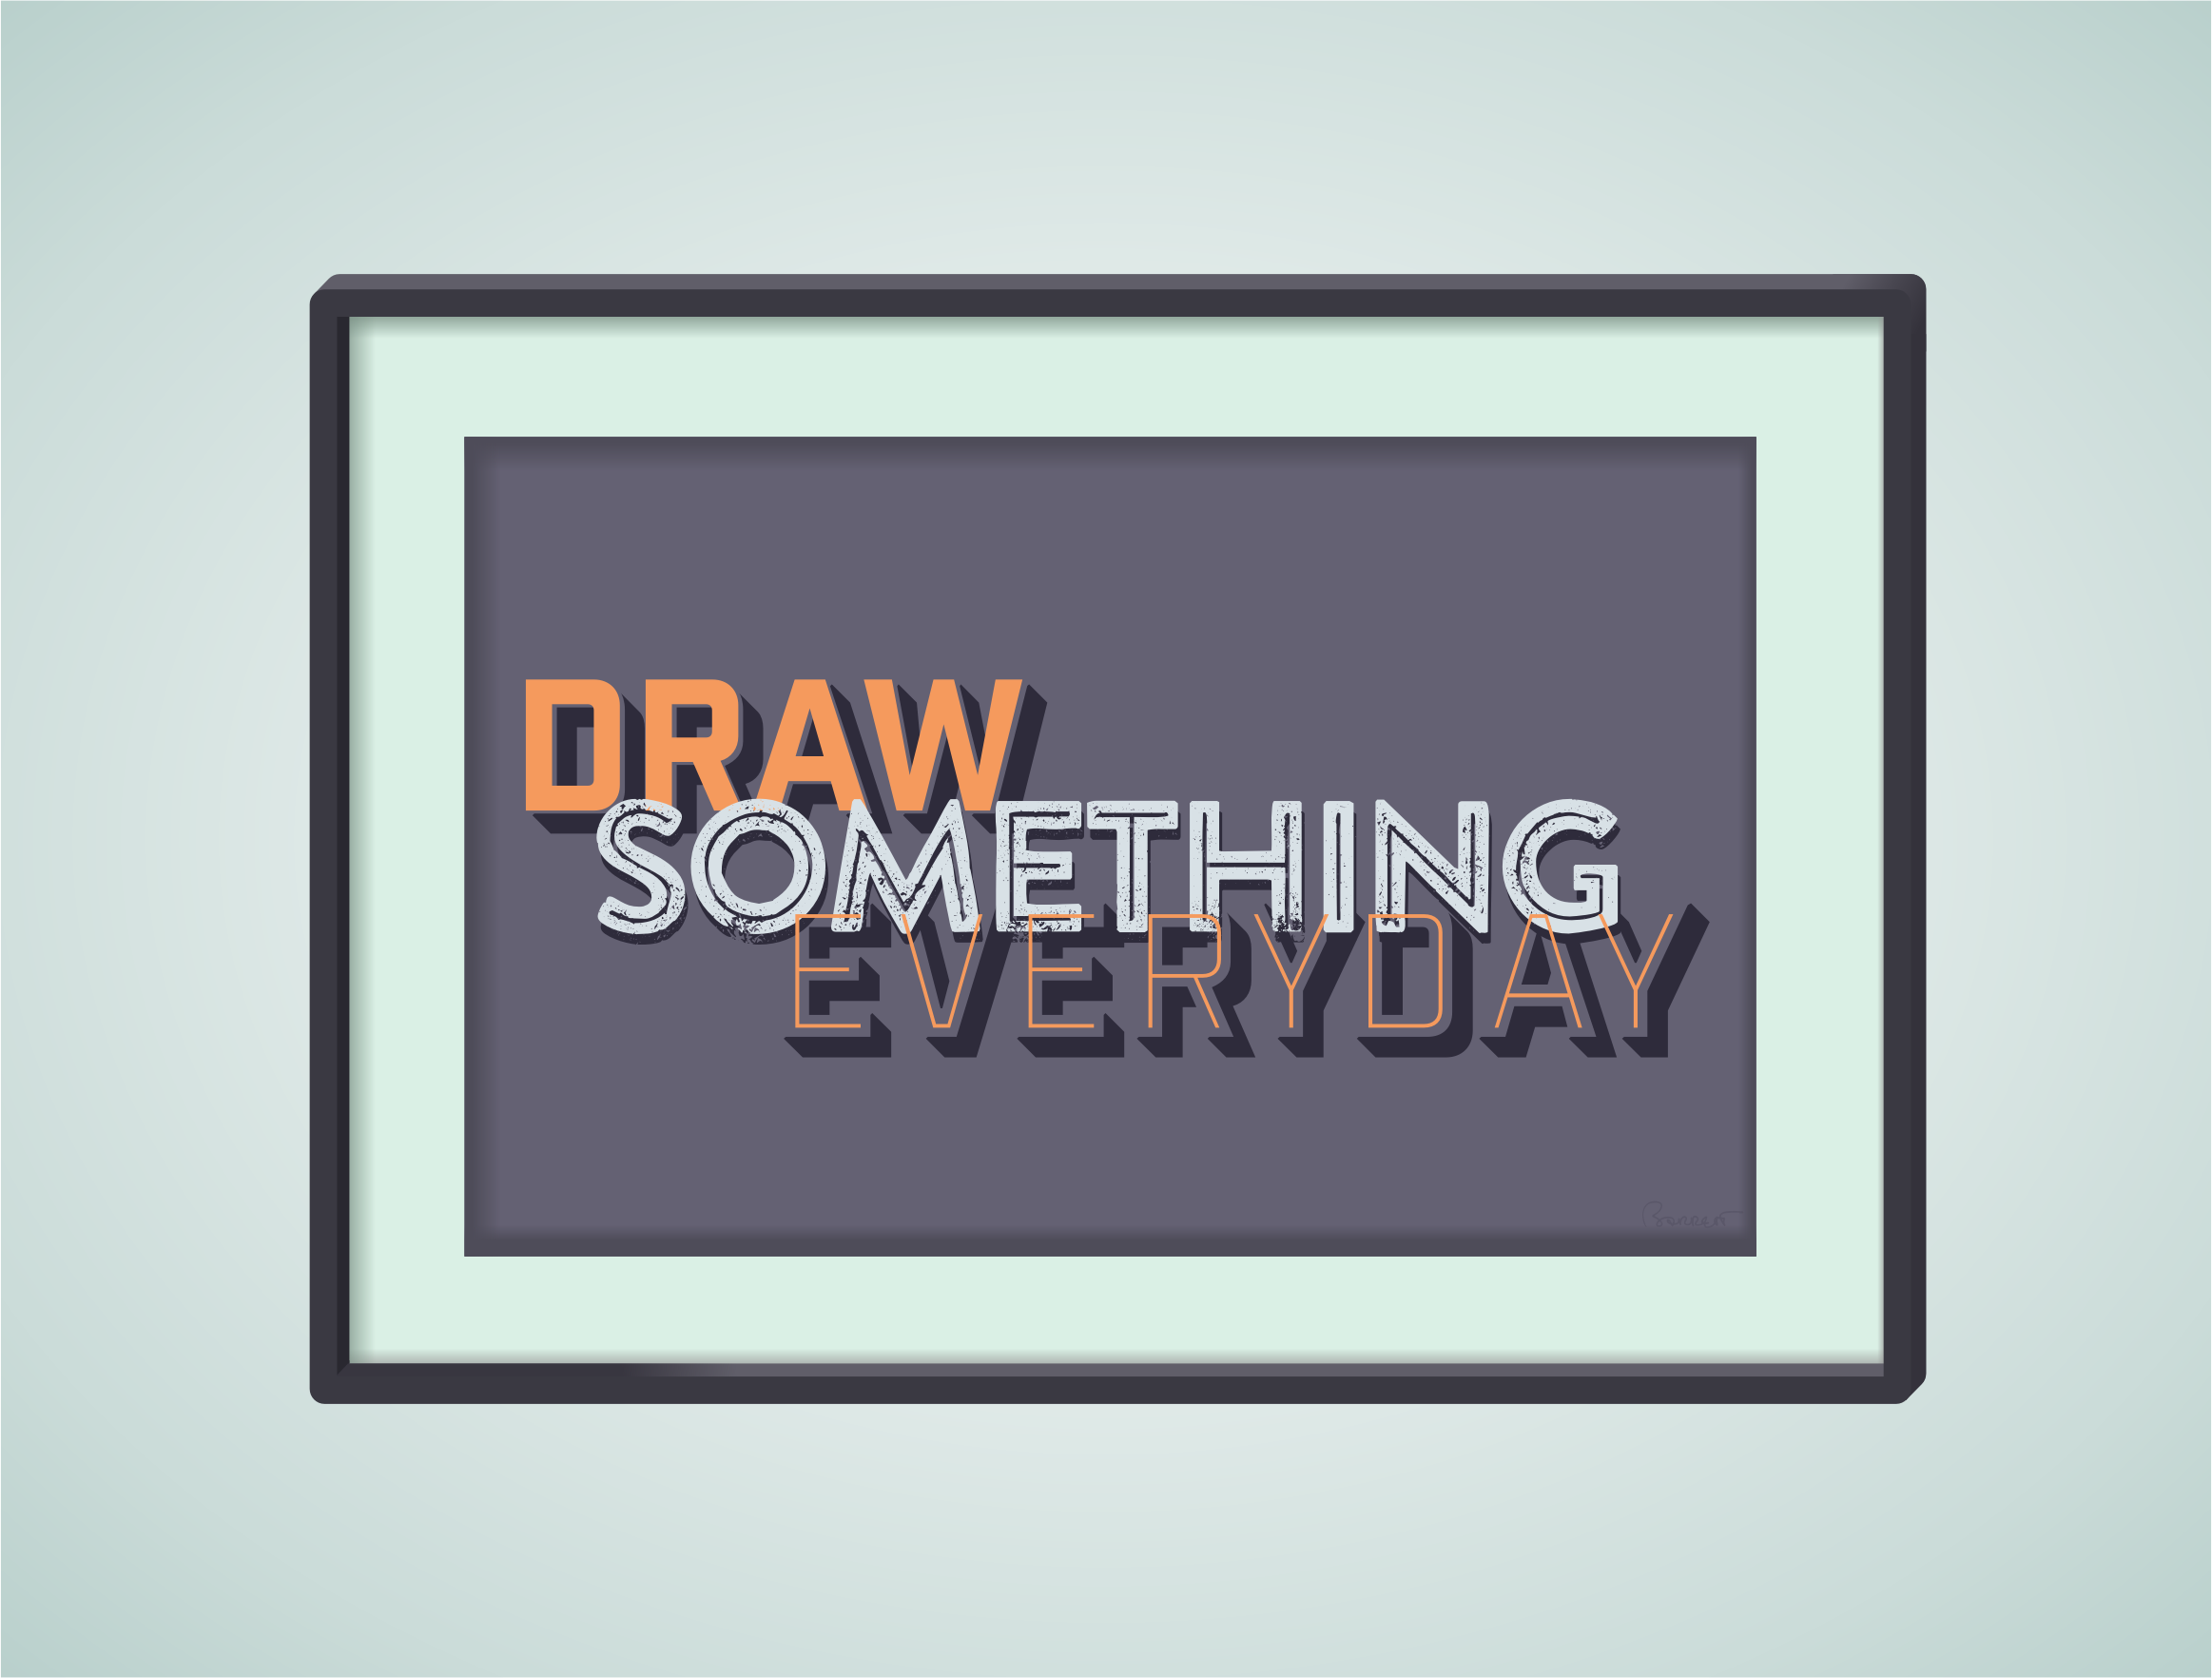 Draw Something Everyday by barrettward